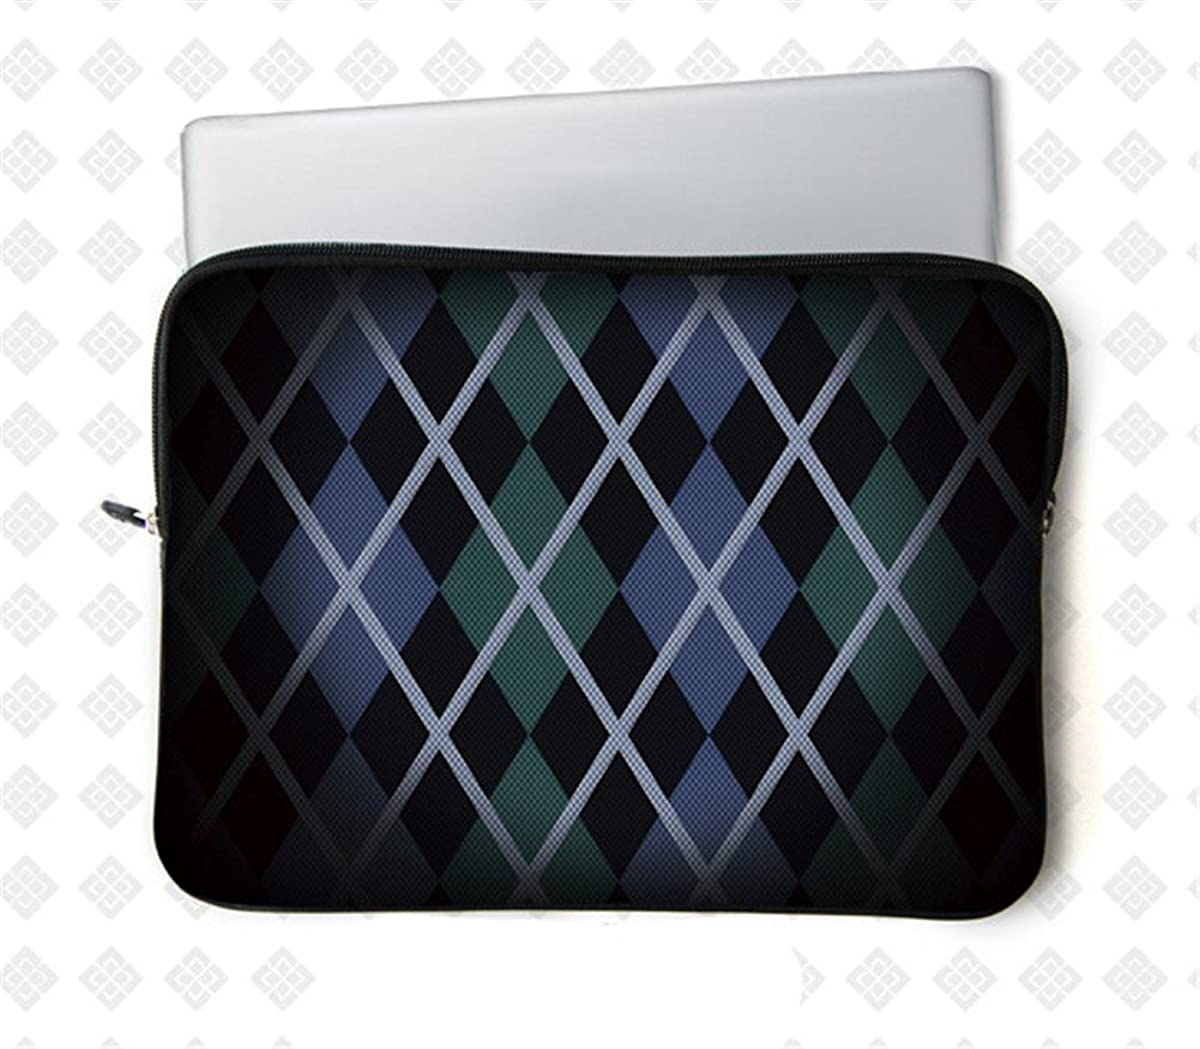 Fashion Ultra-light Waterproof Anti-Shock Neoprene Unique style 9.7 10.1 10.6 inch Netbook/ipad/iPad air/Laptop/Computer Briefcase Pouch Sleeve bag Carrying Case Cover Tote bags(Geometric)